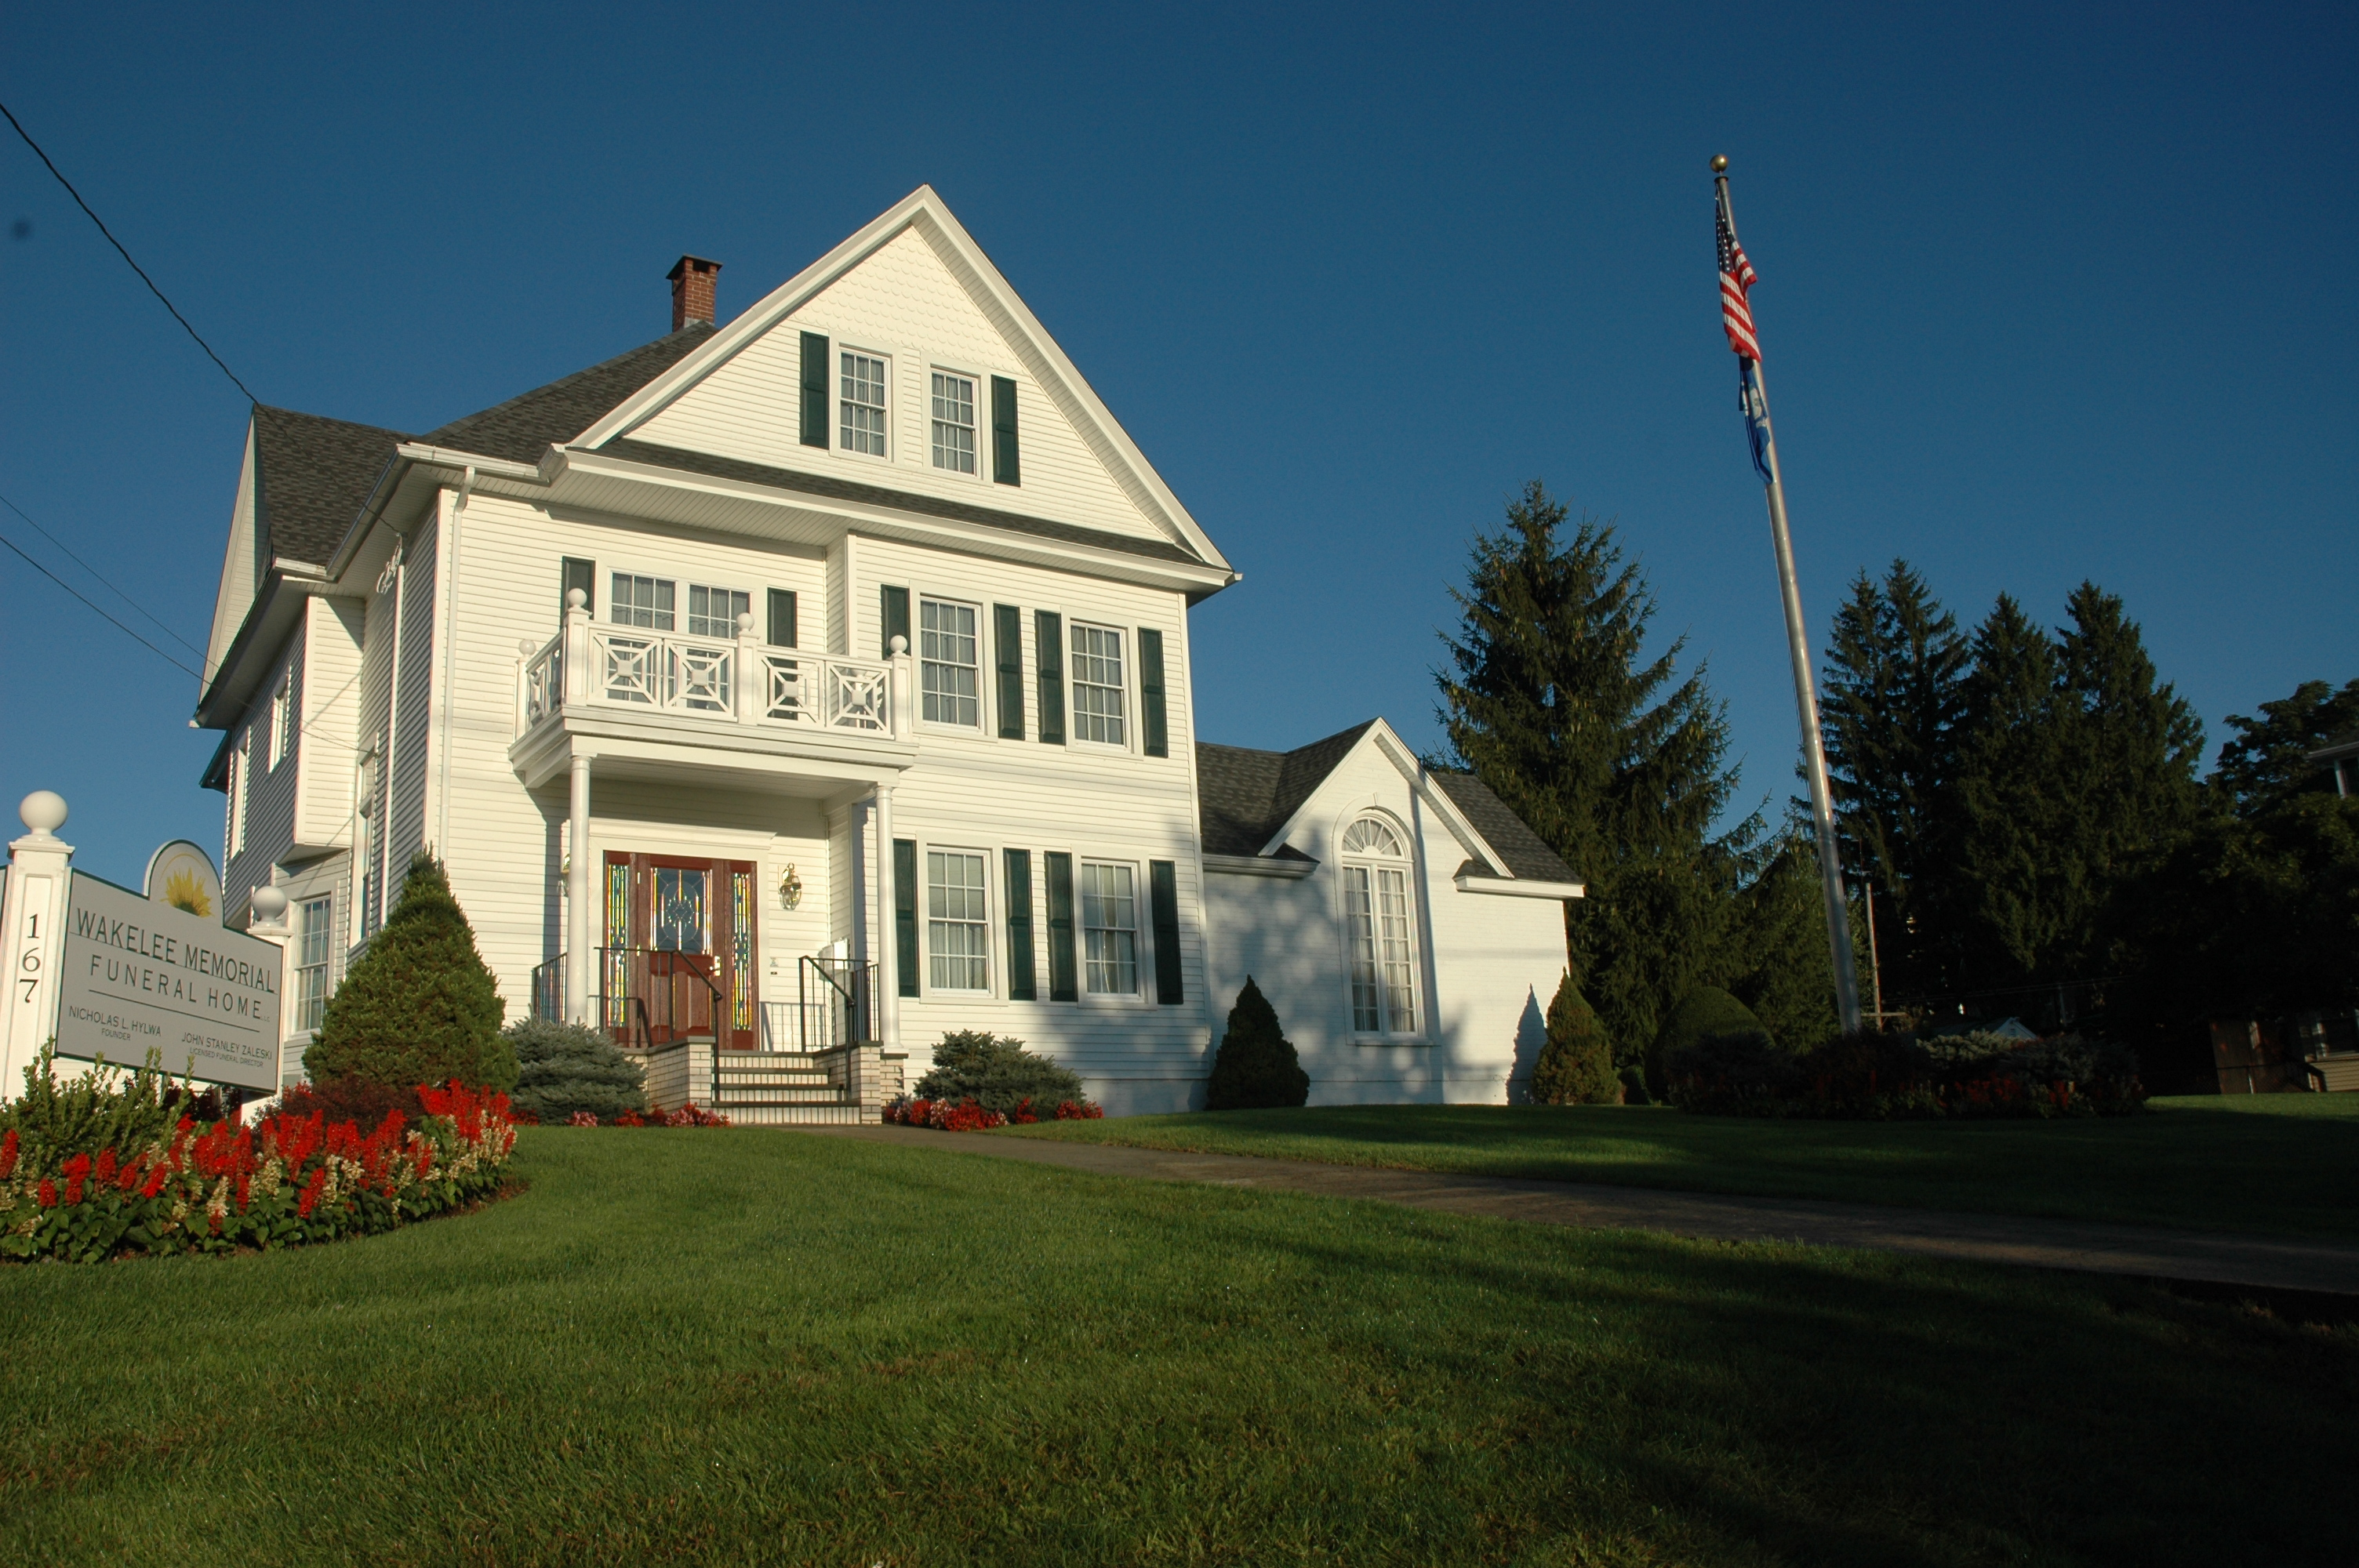 Wakelee Memorial Funeral Home 167 Wakelee Ave Ansonia Ct